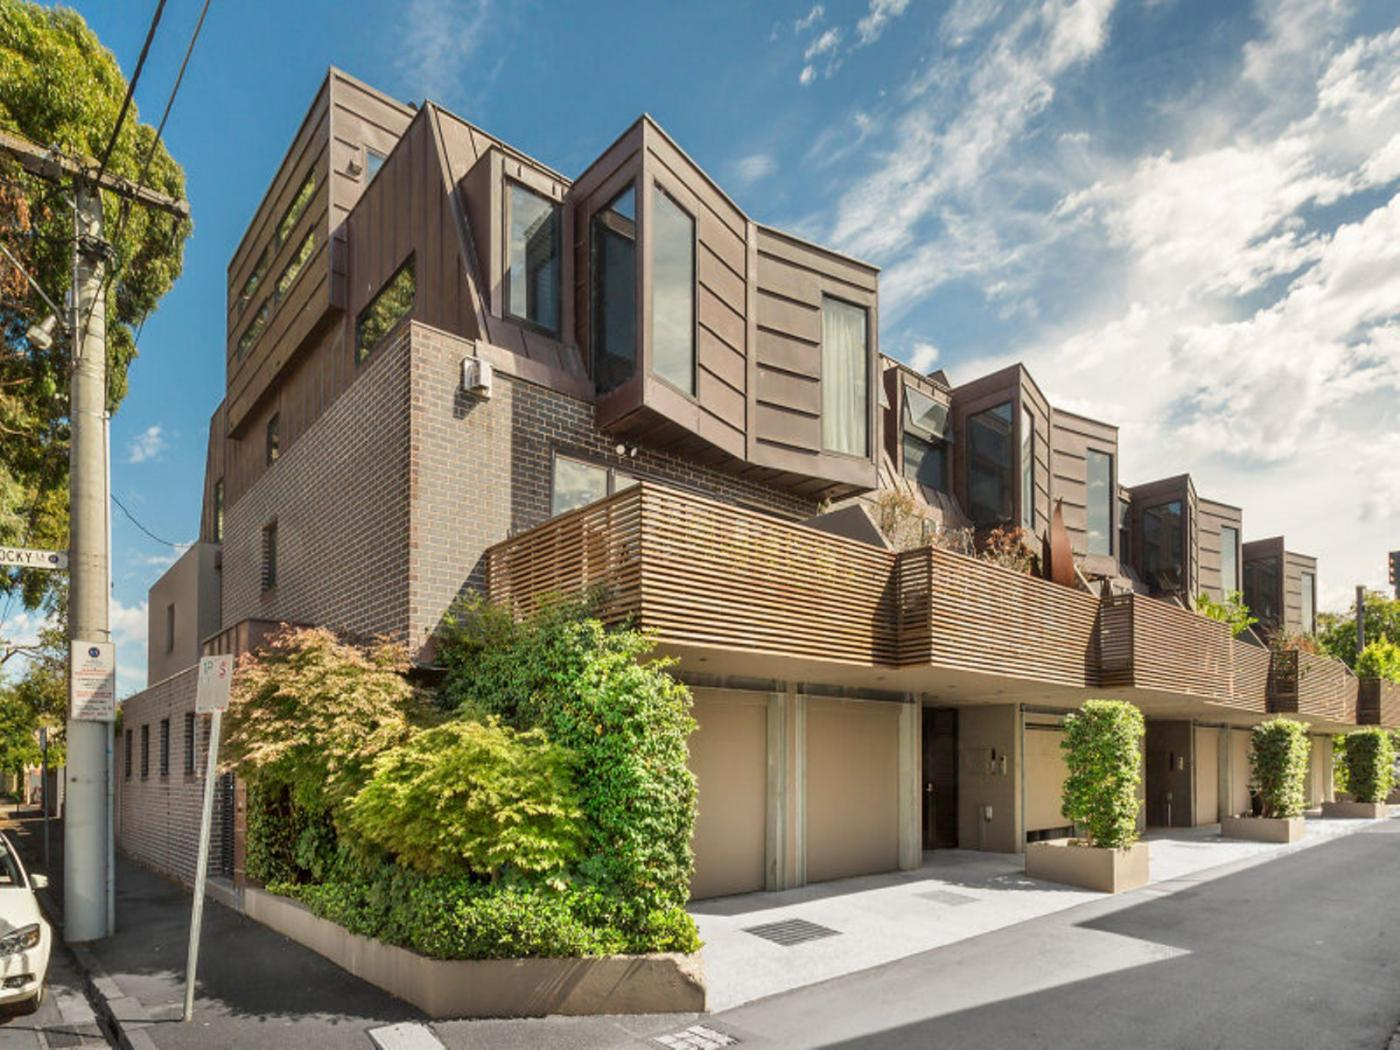 55-fitzgerald-street-south-yarra-vic-3141-real-estate-photo-1-xlarge-12718594